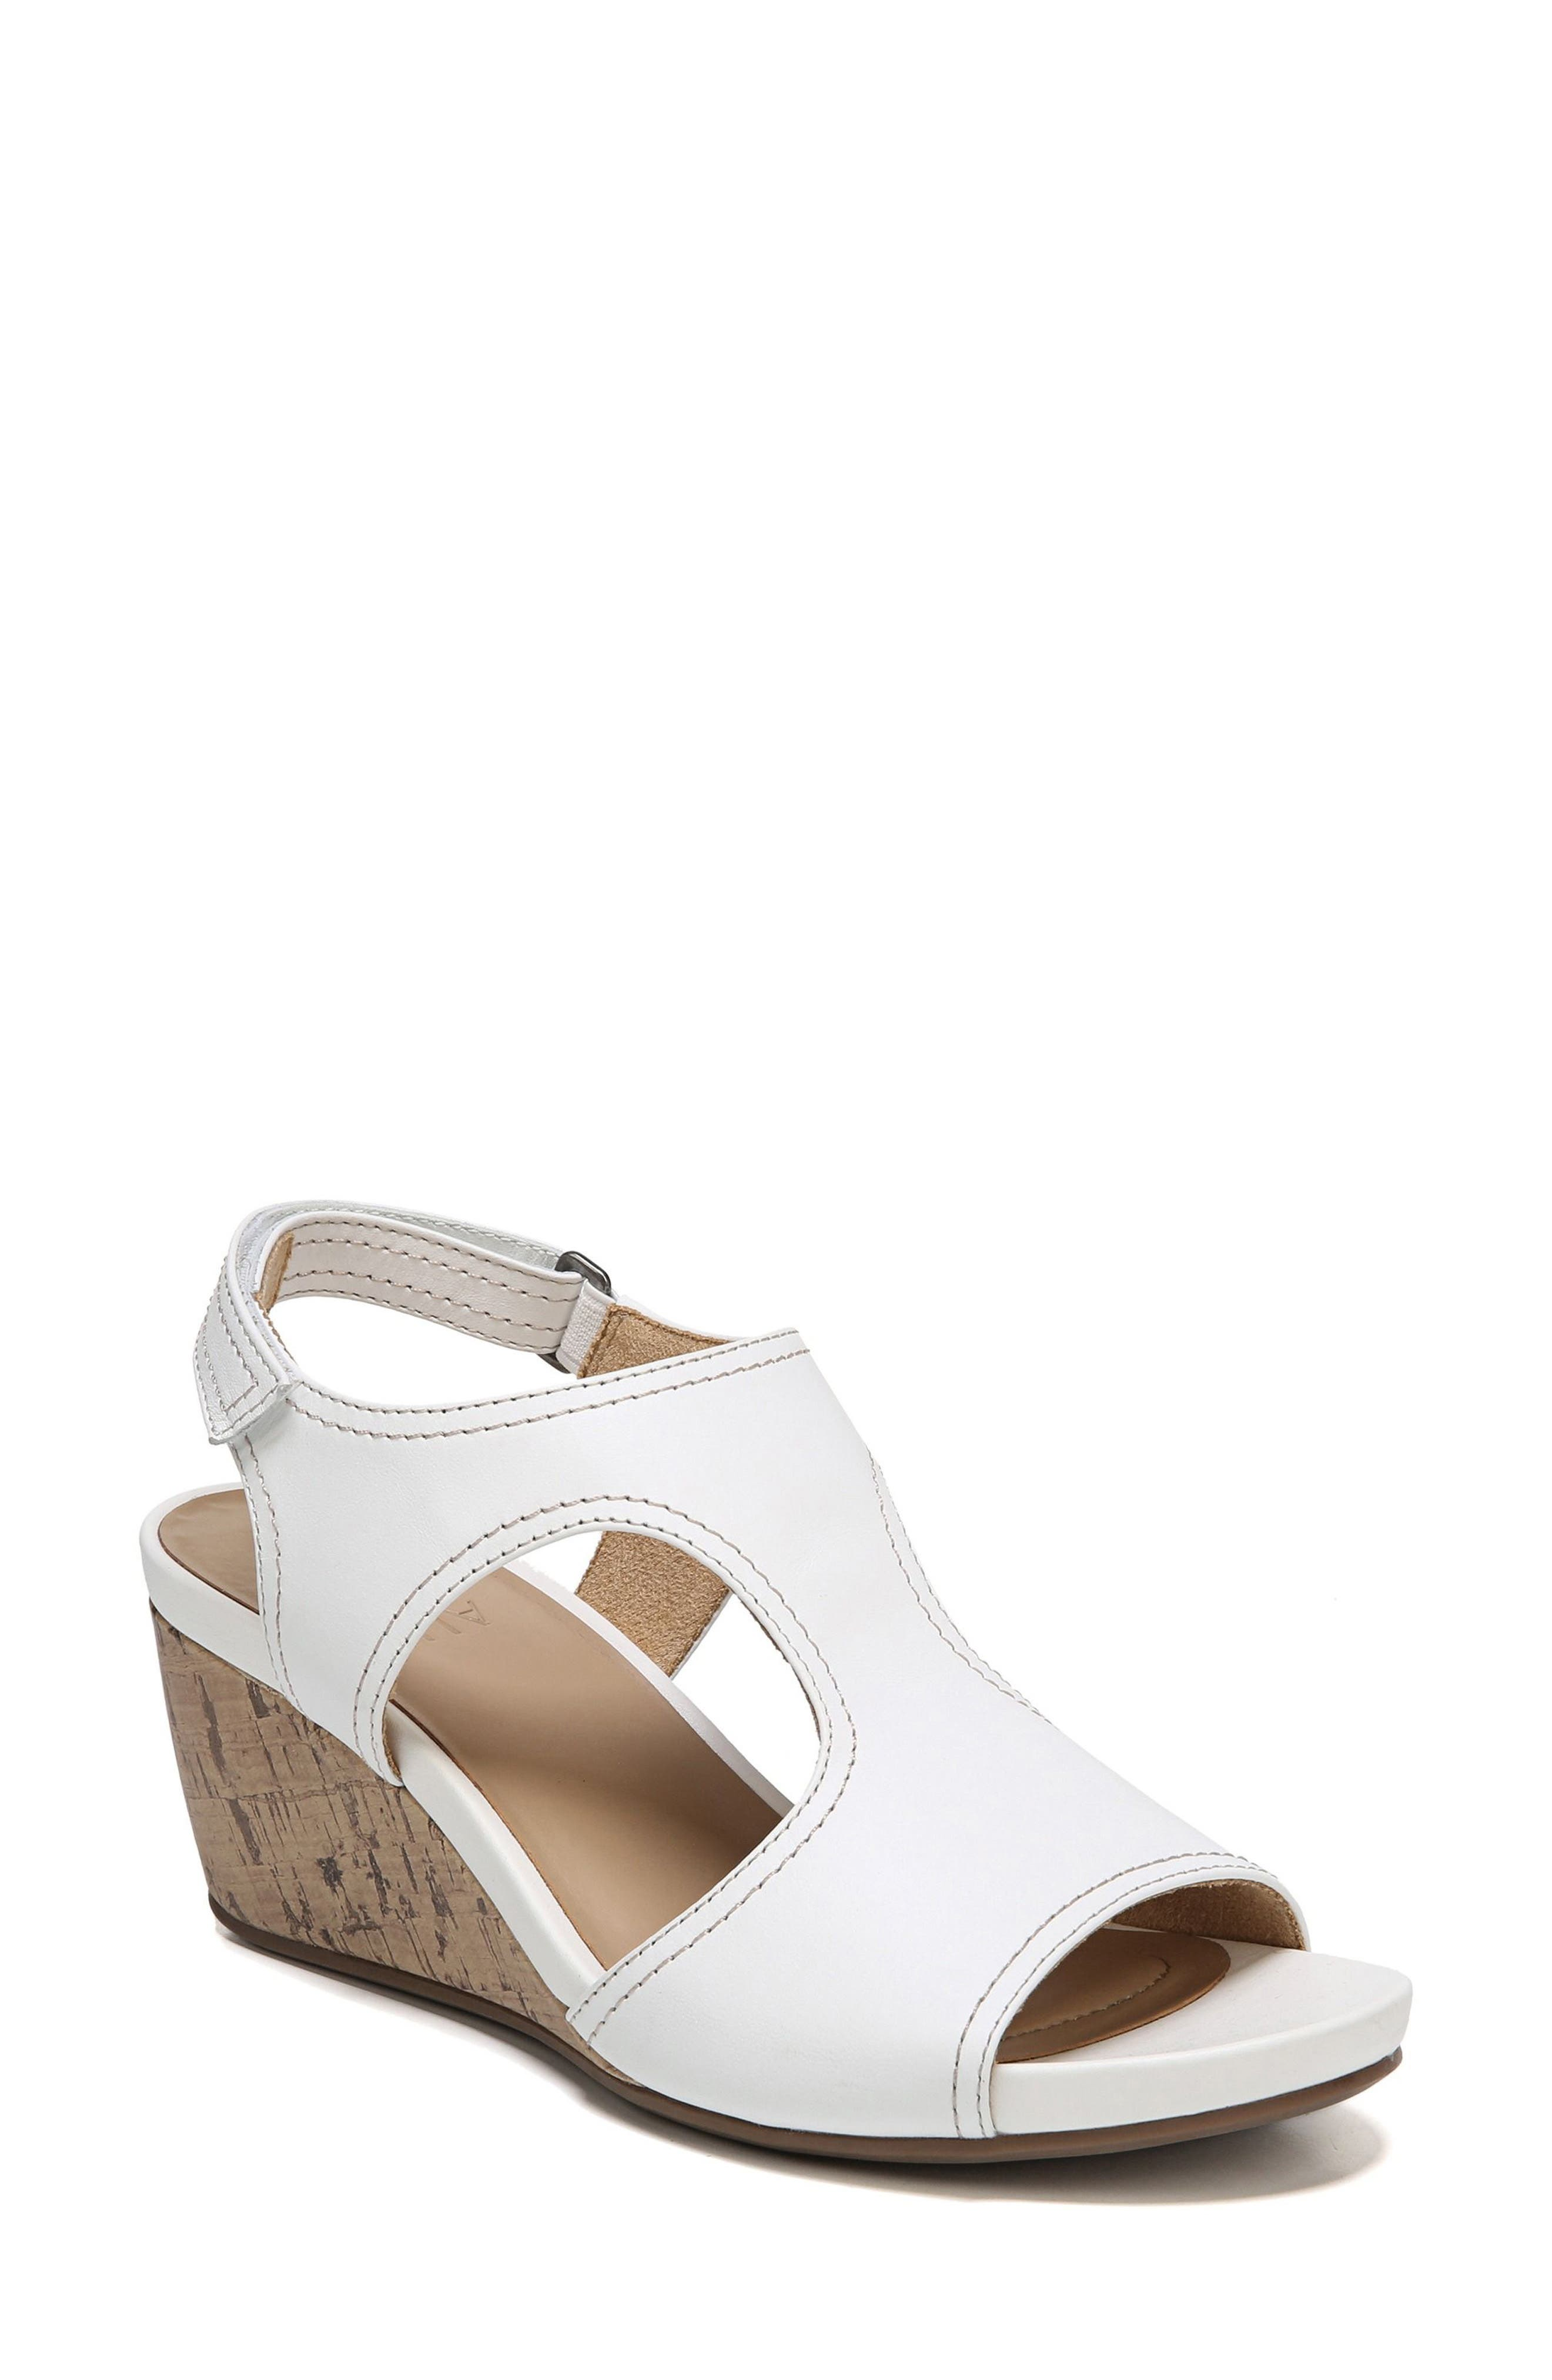 Cinda Wedge Sandal,                             Main thumbnail 1, color,                             White Leather